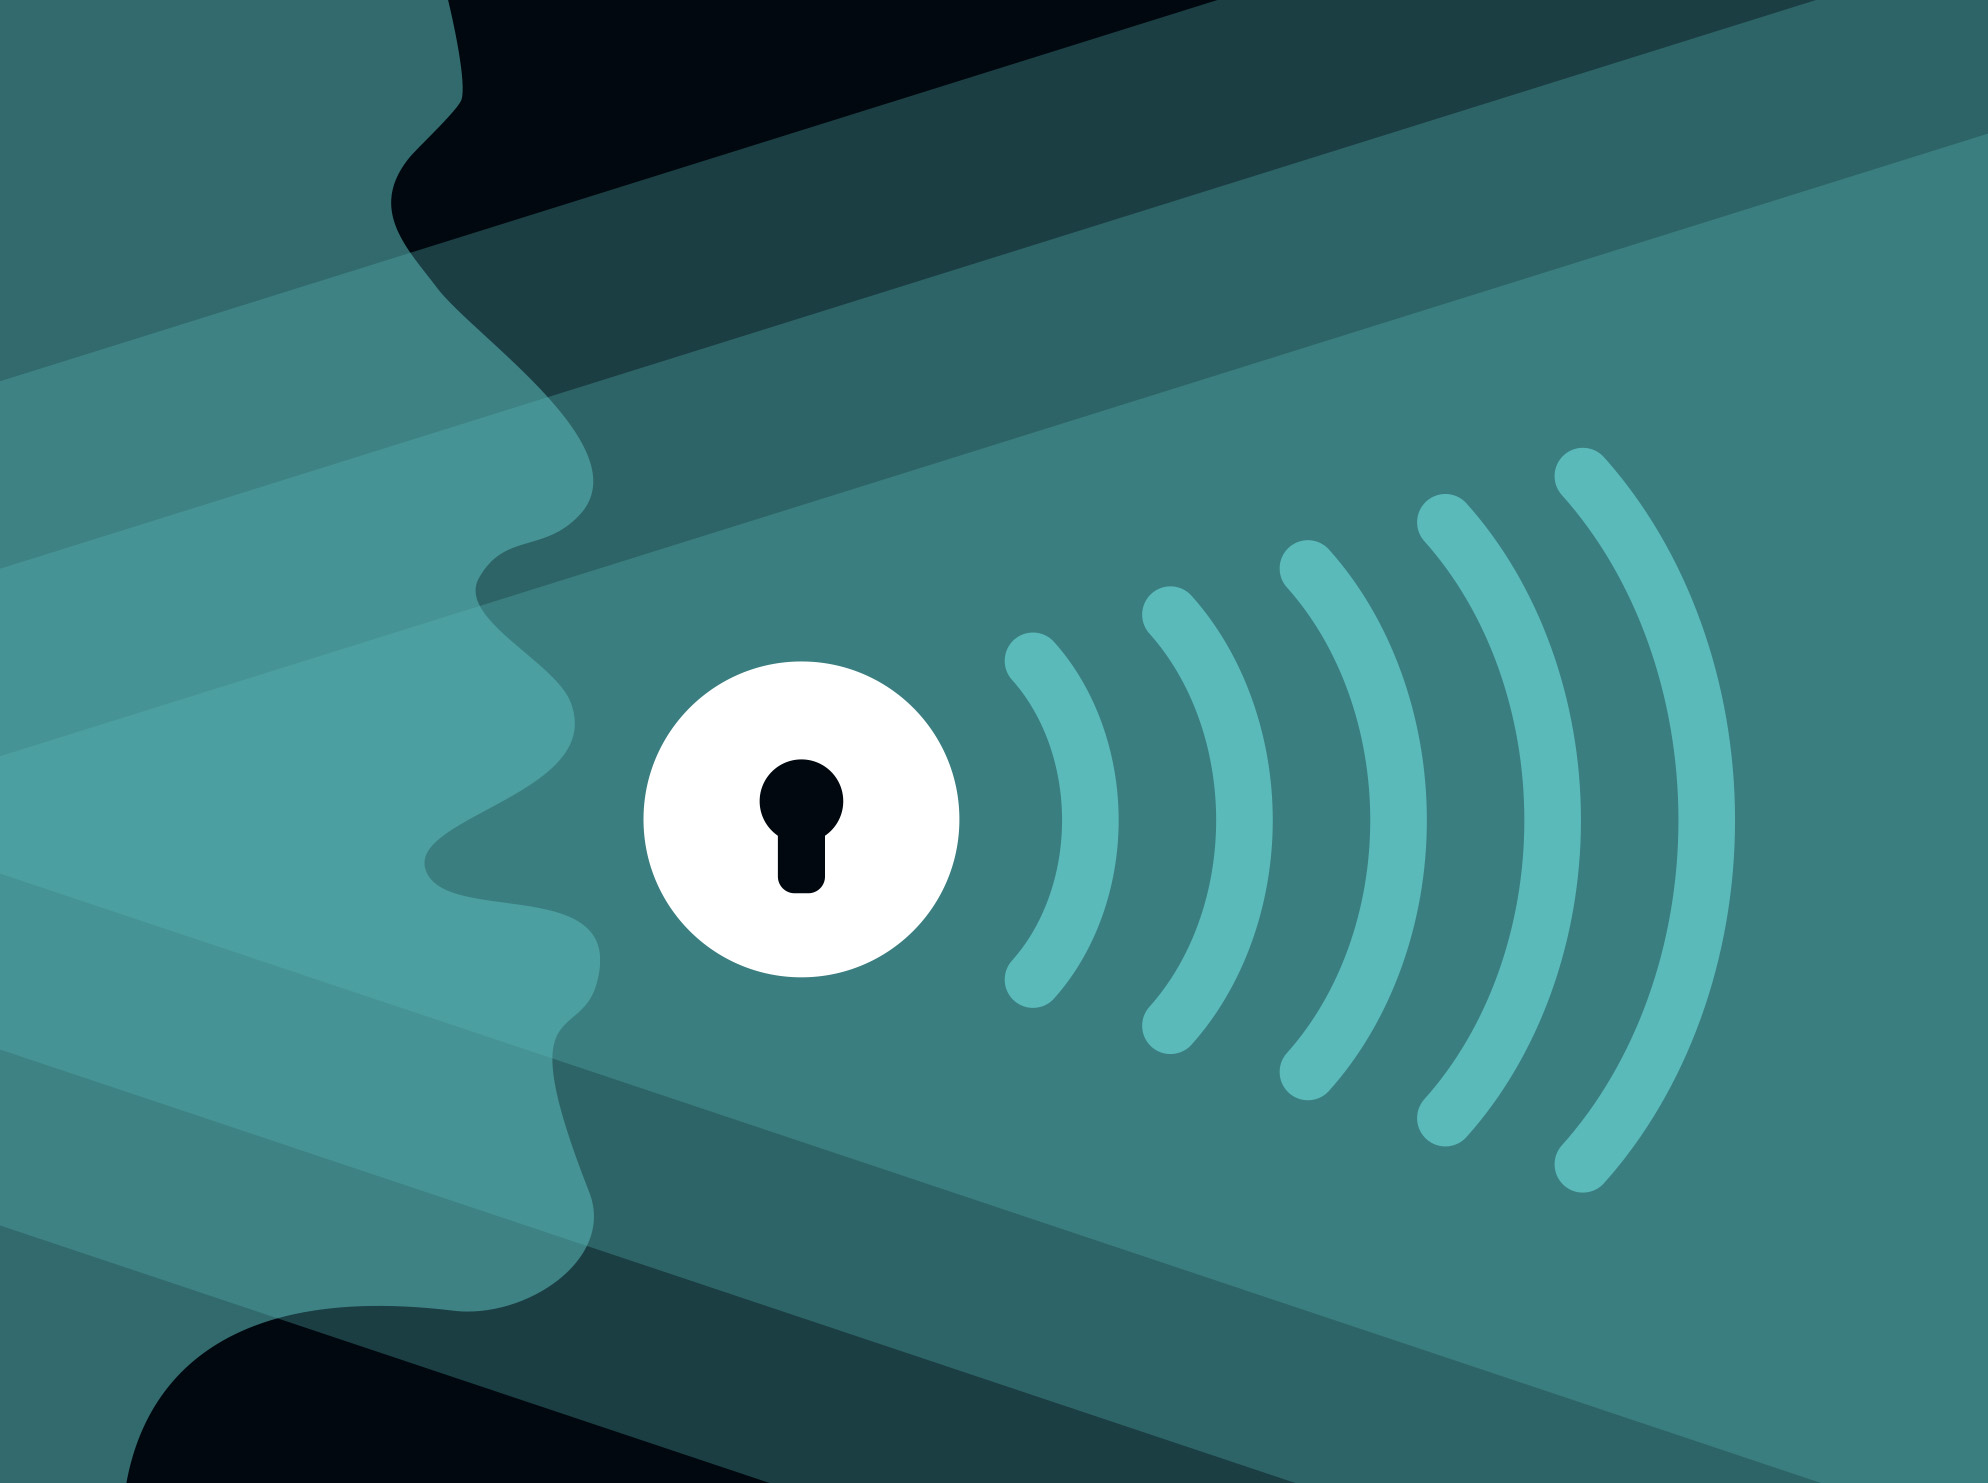 Private By Design:Free and Private Voice Assistants